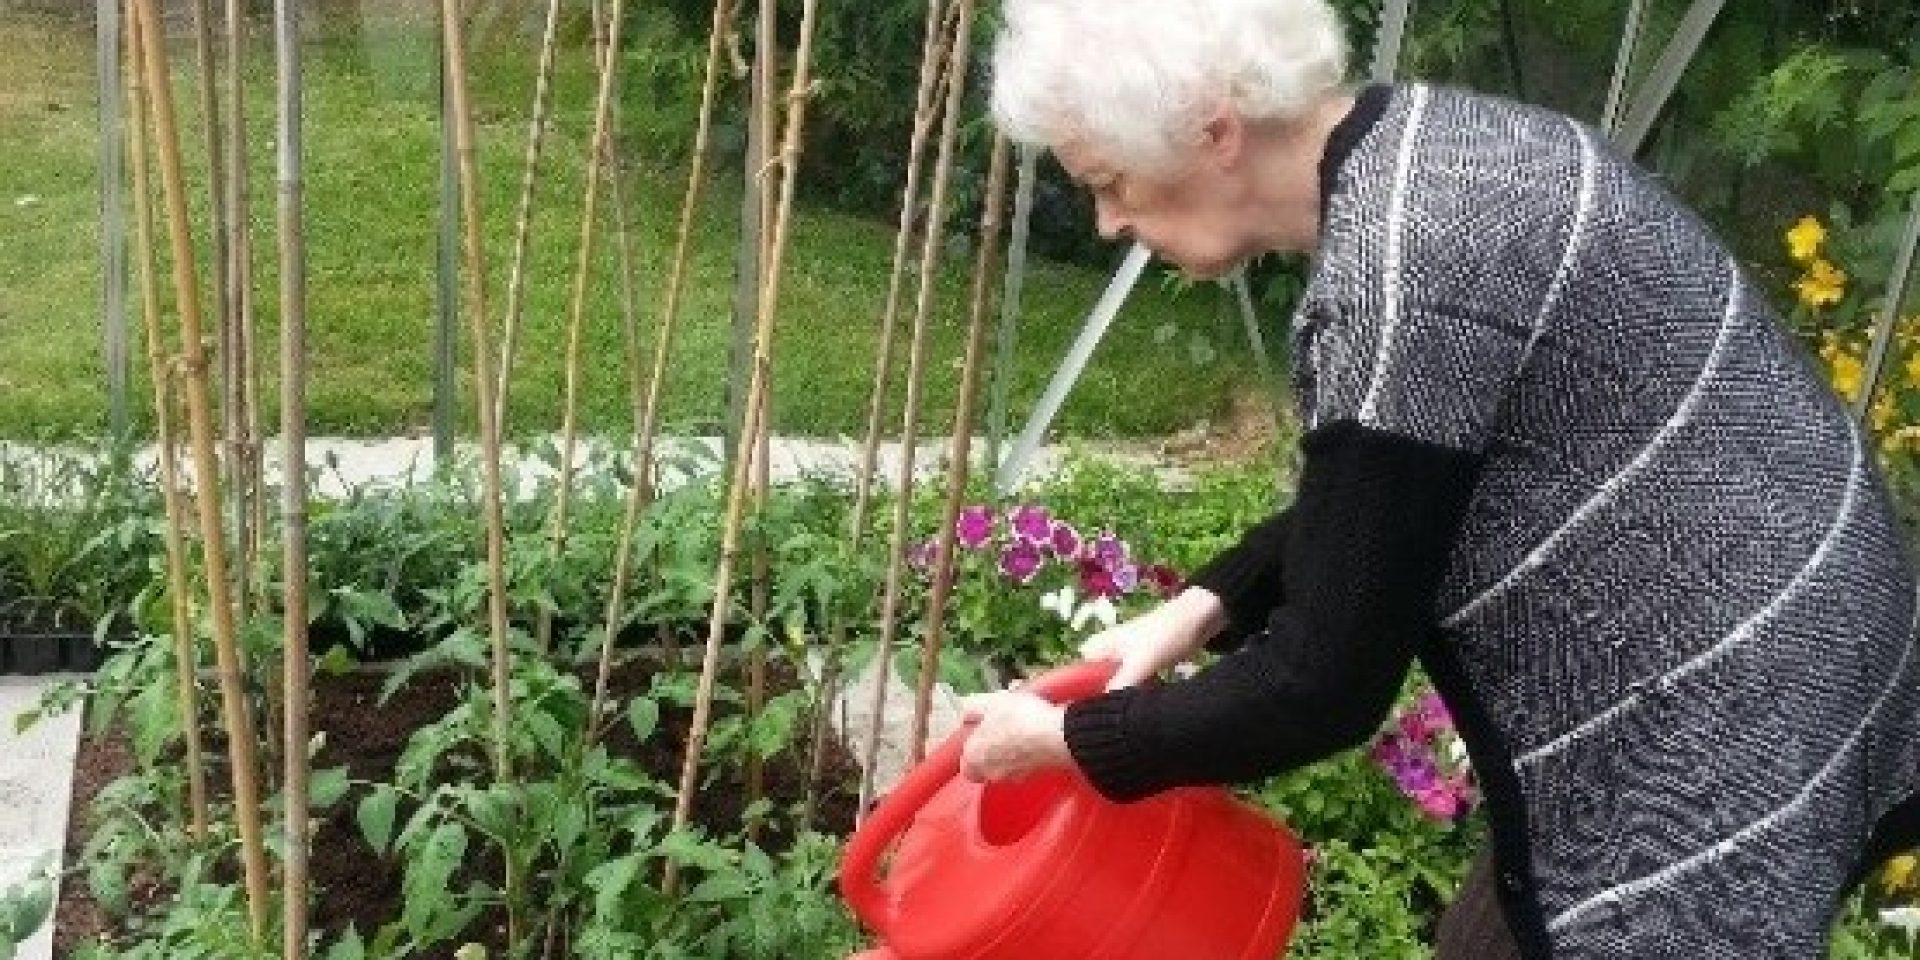 Gardening with Dementia at Croxley House